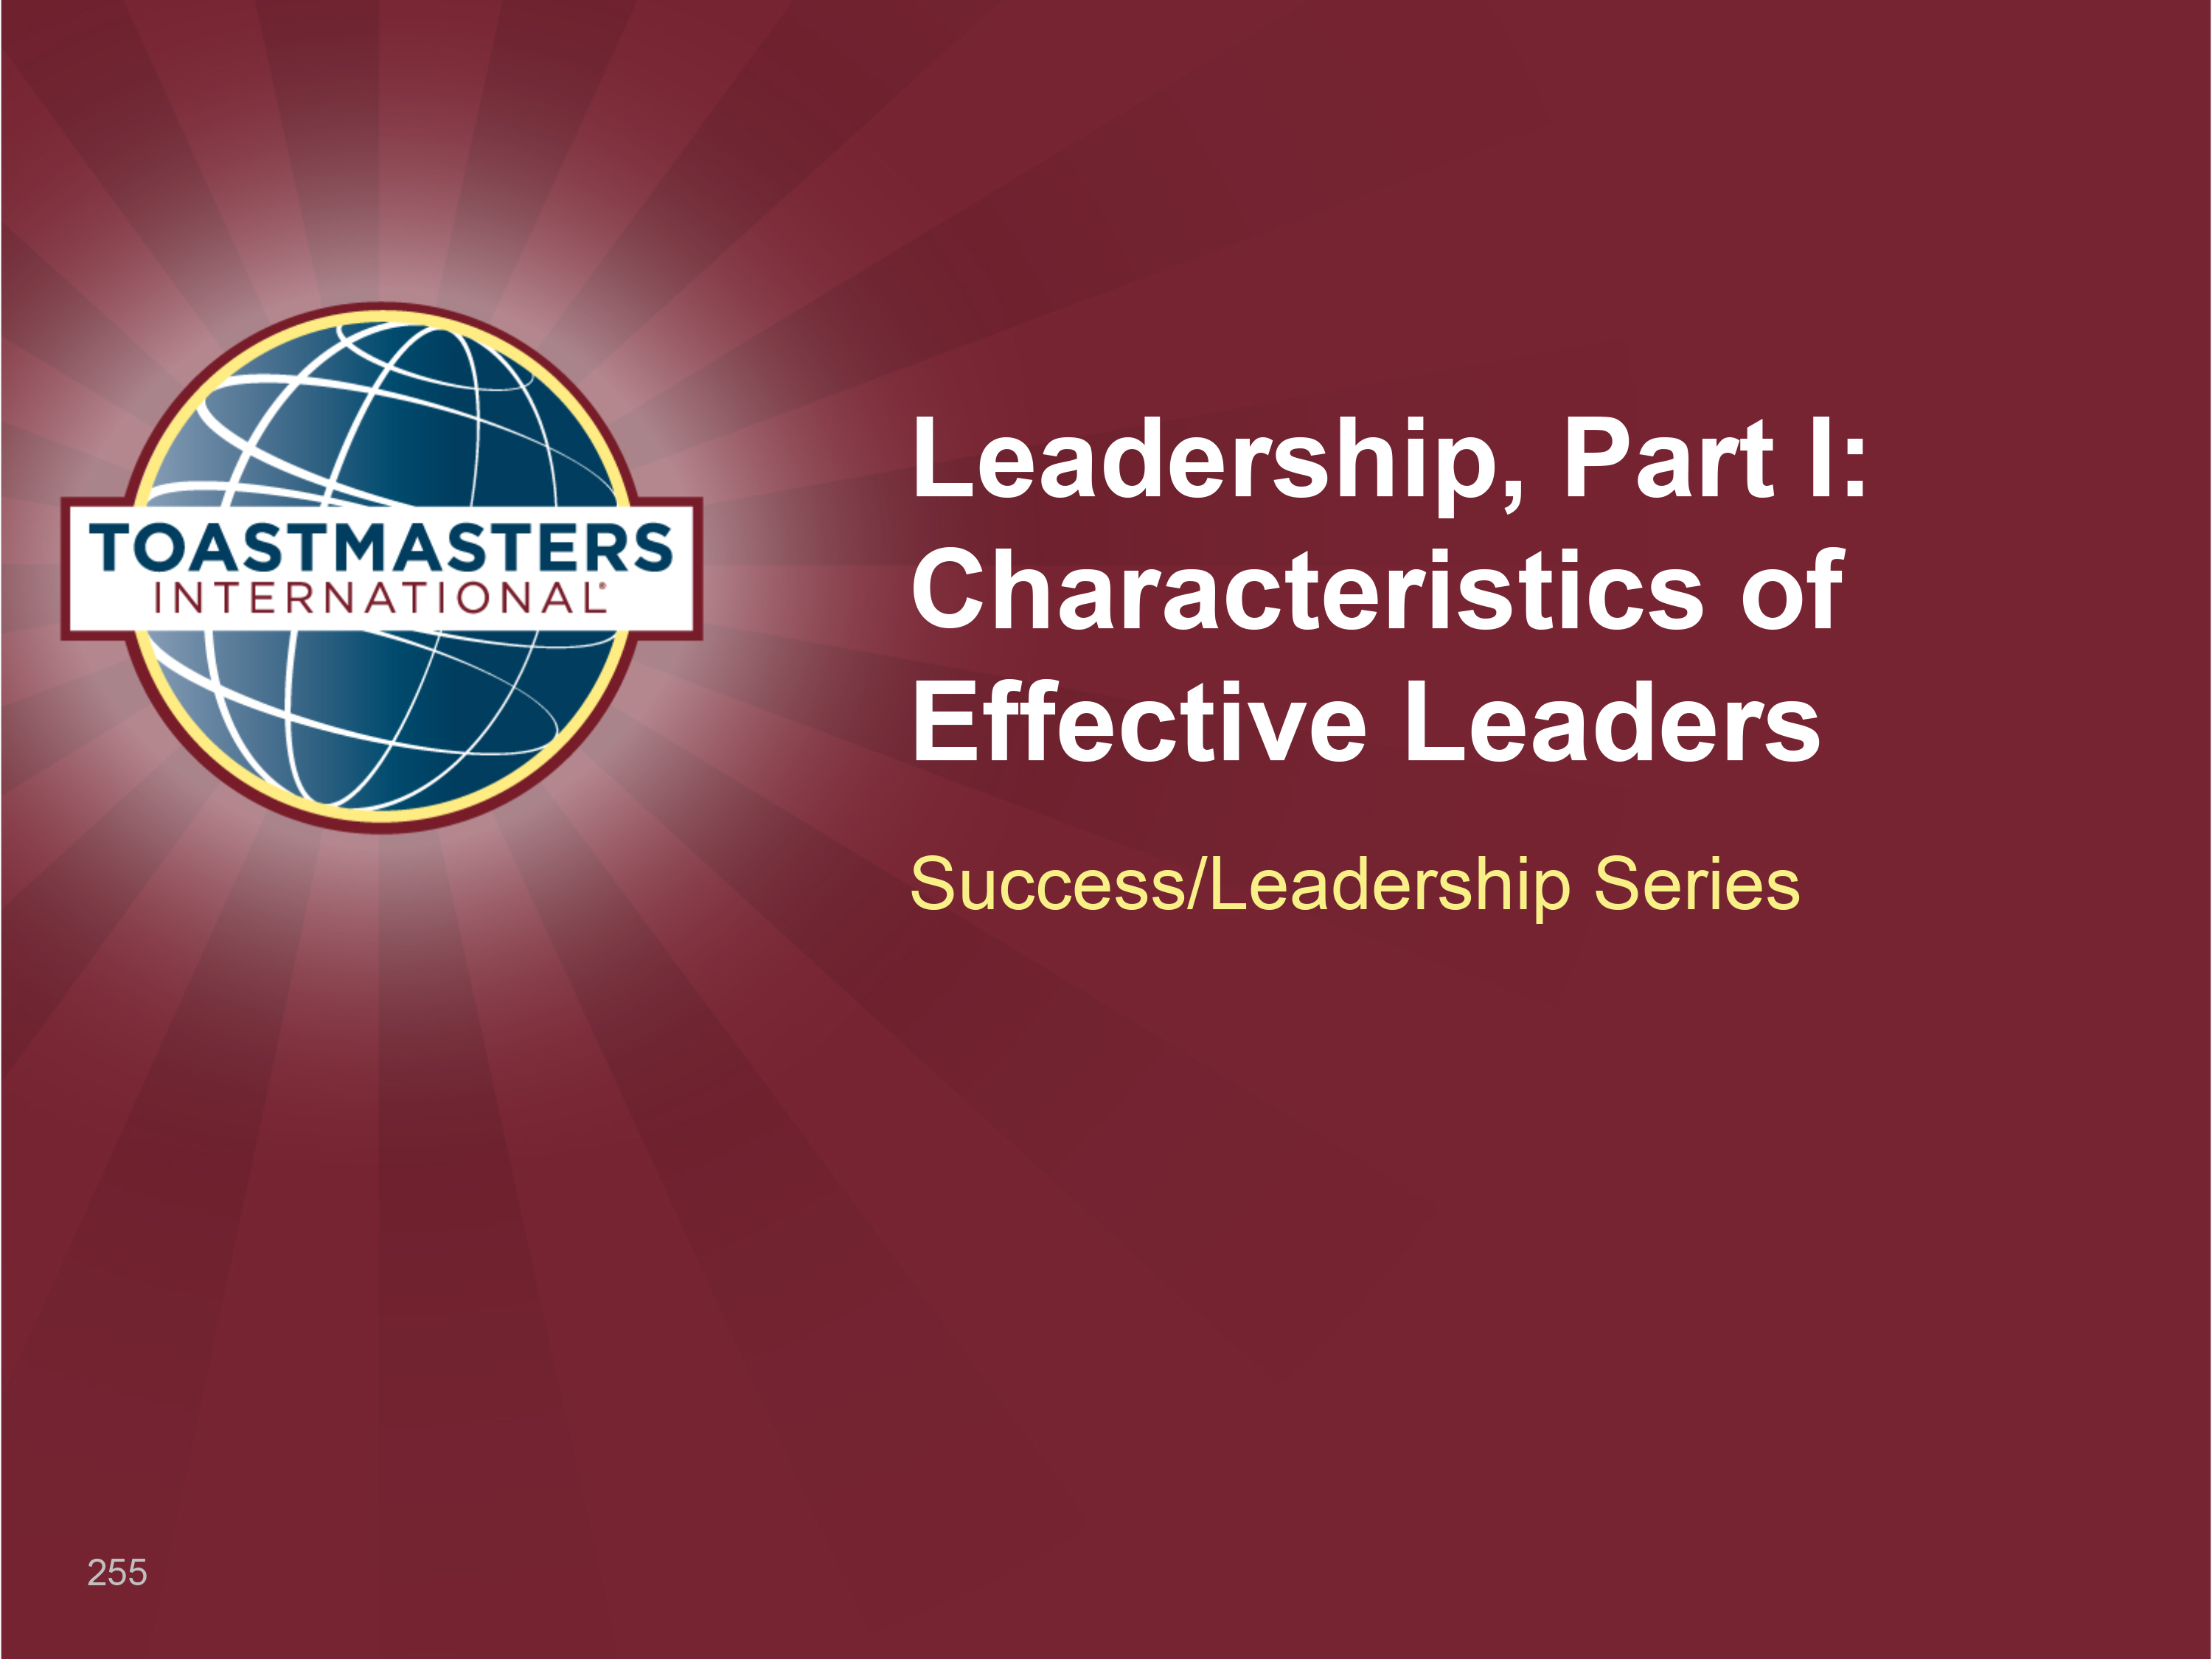 Leadership, Part I: Characteristics of Effective Leaders (PPT)